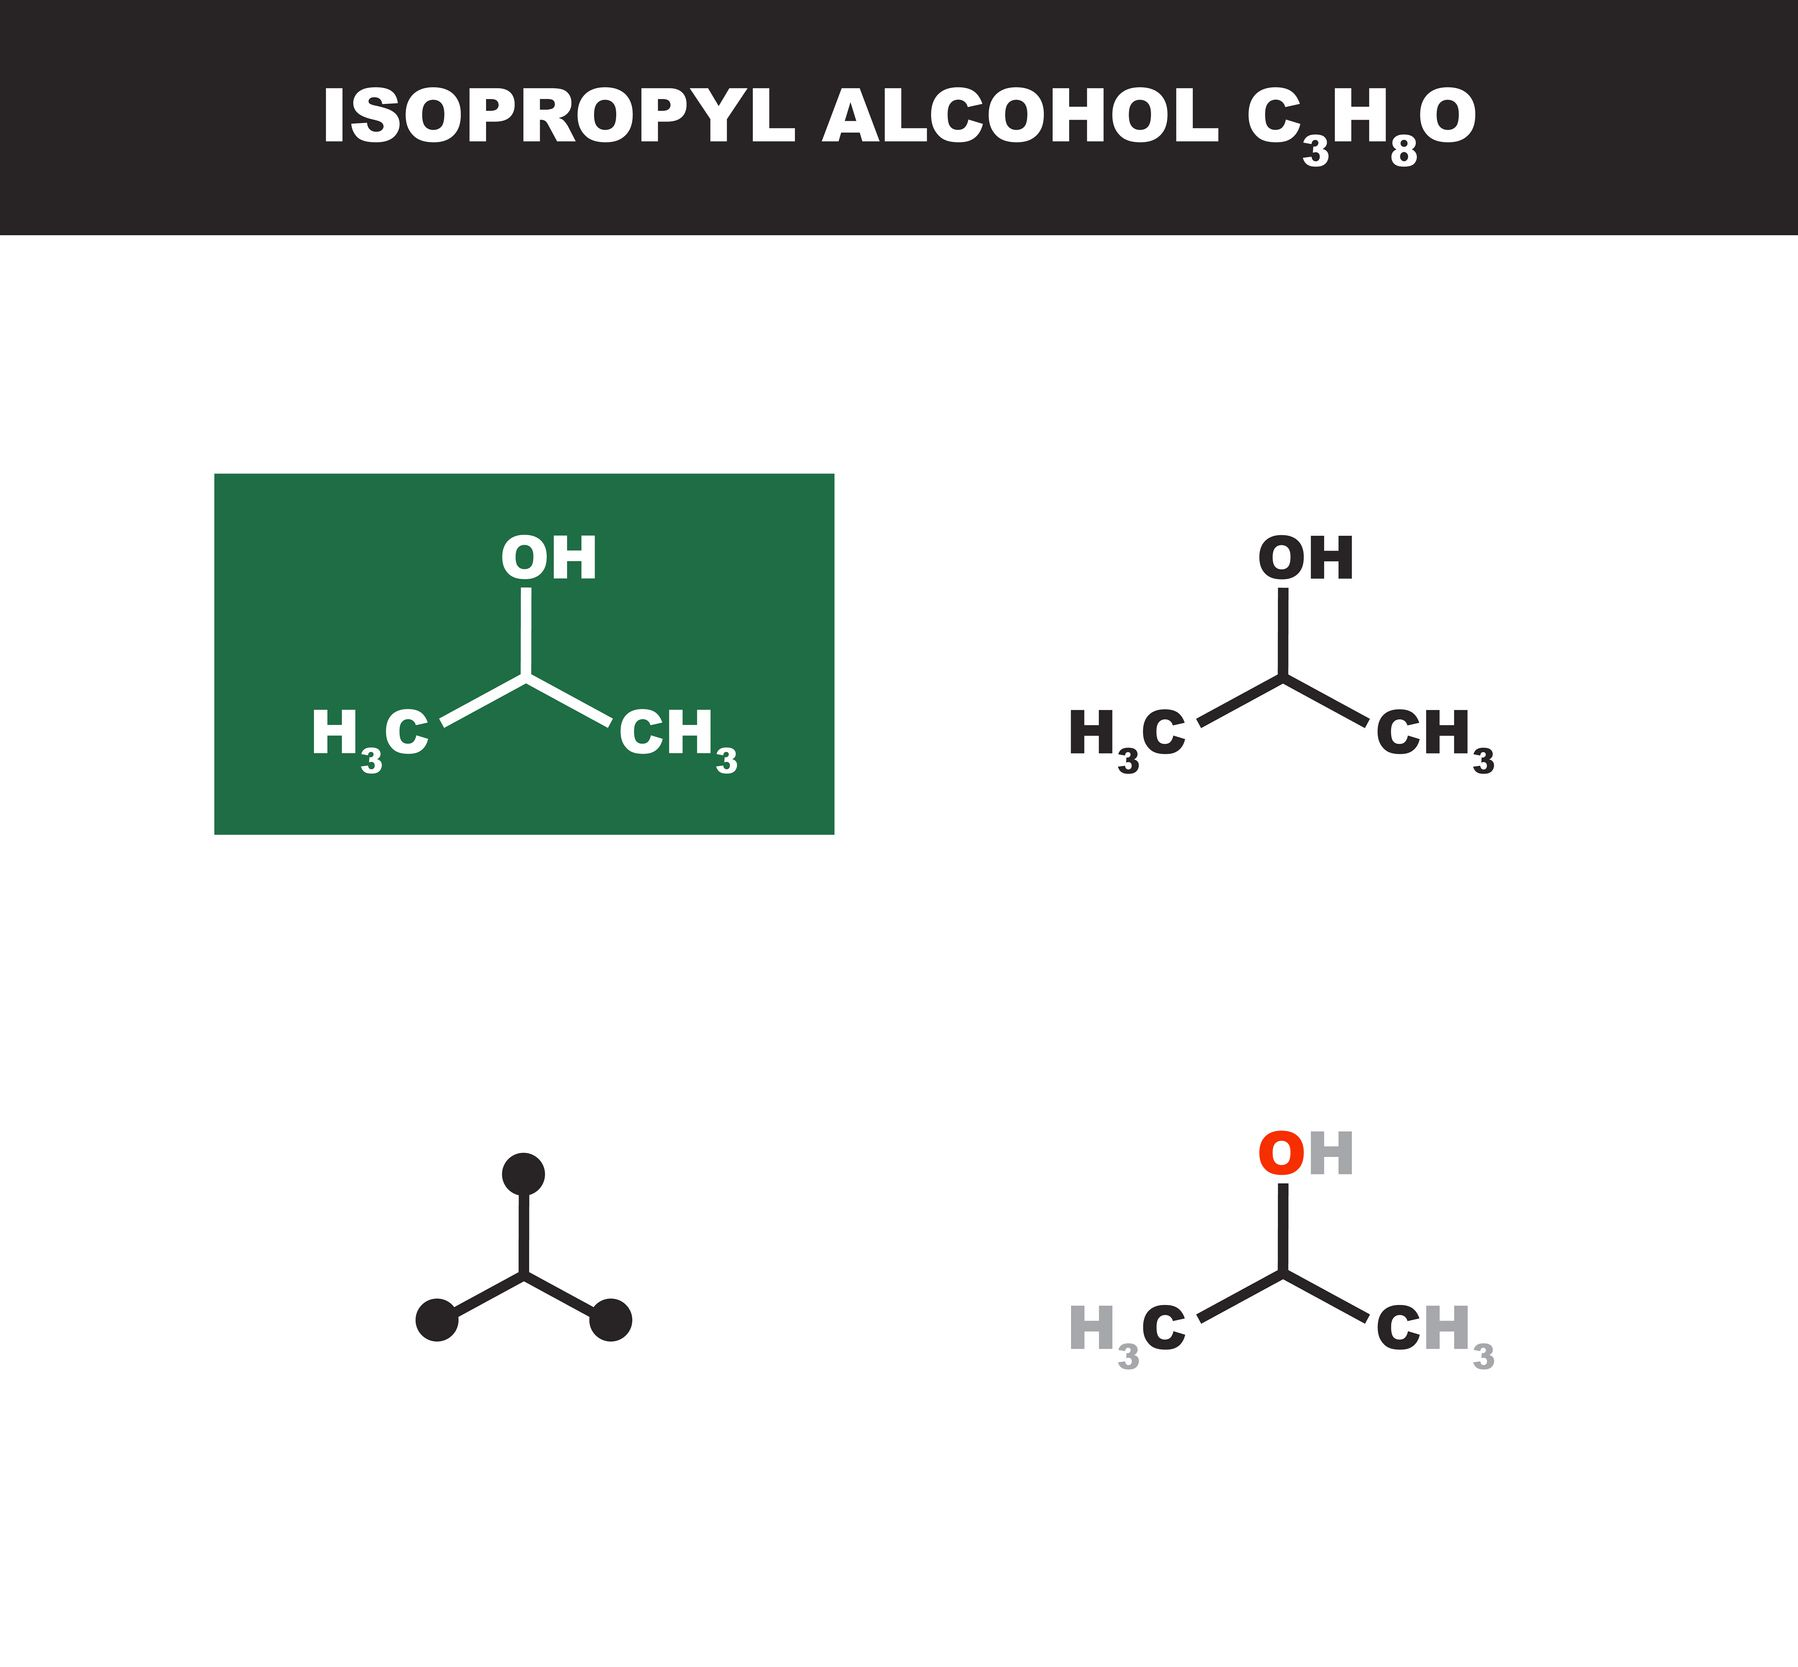 hight resolution of isopropyl alcohol chemical structures